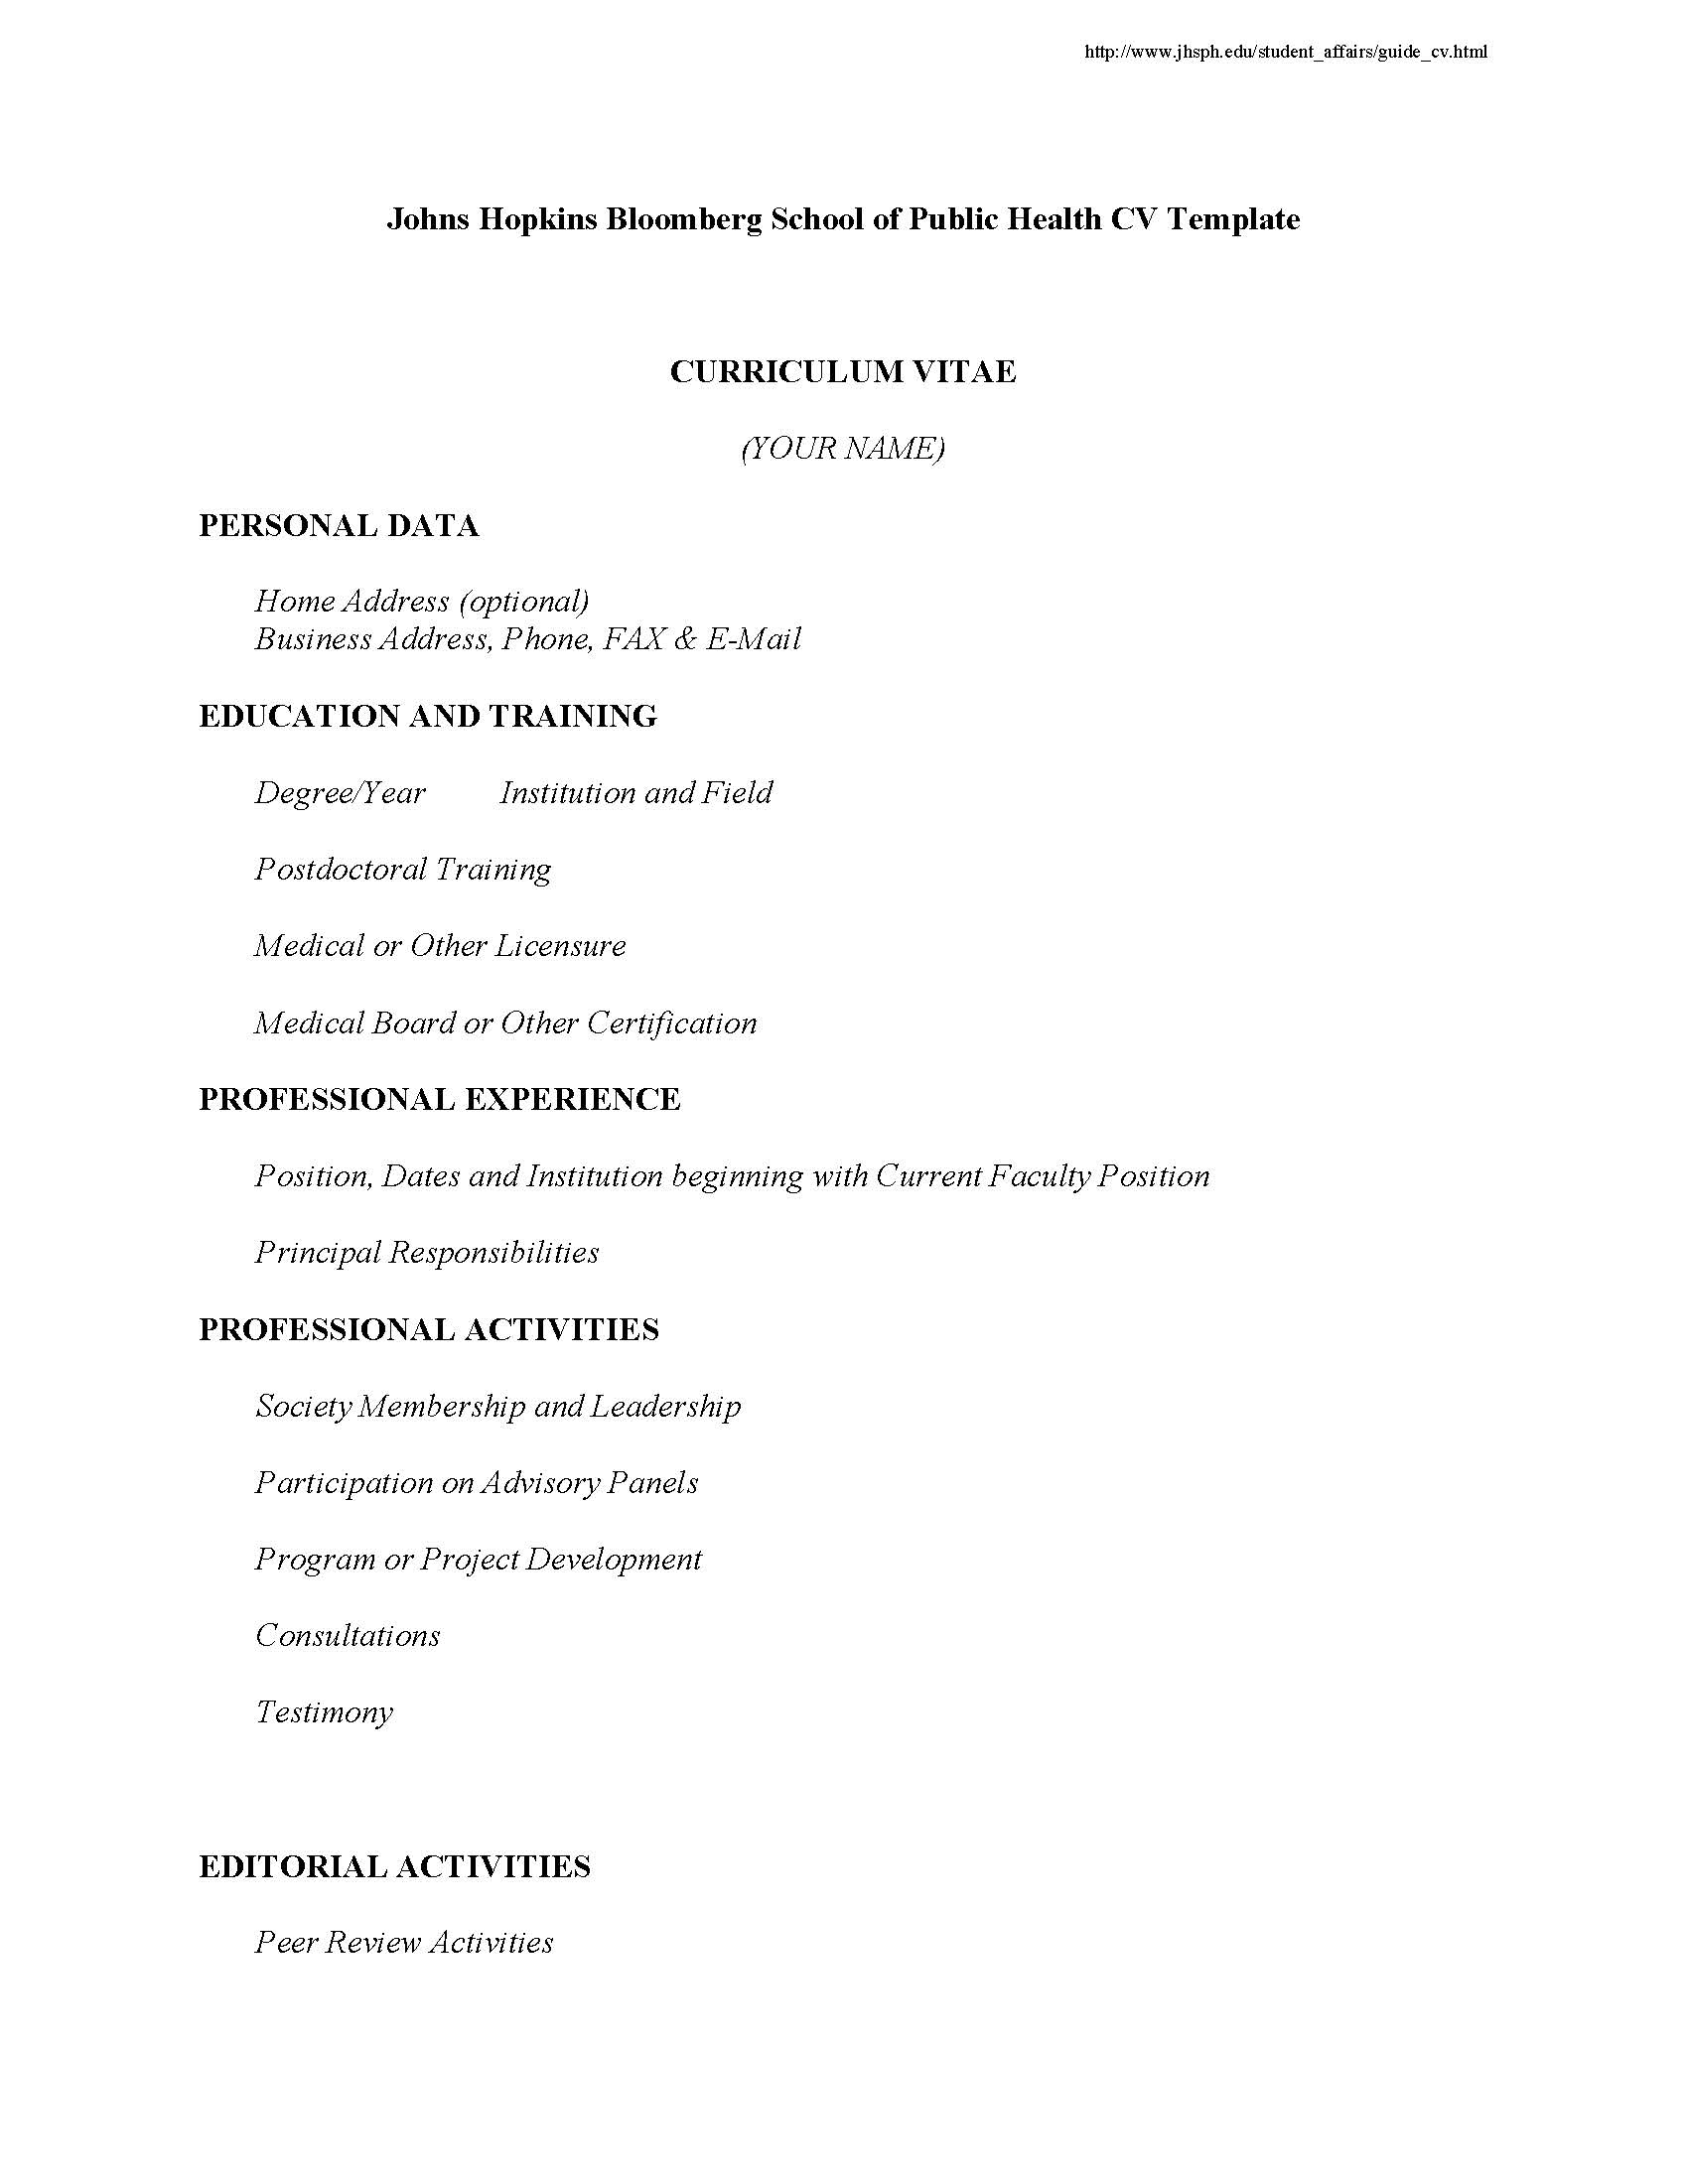 Resumes and cvs career resources for students career jhsph cv template yelopaper